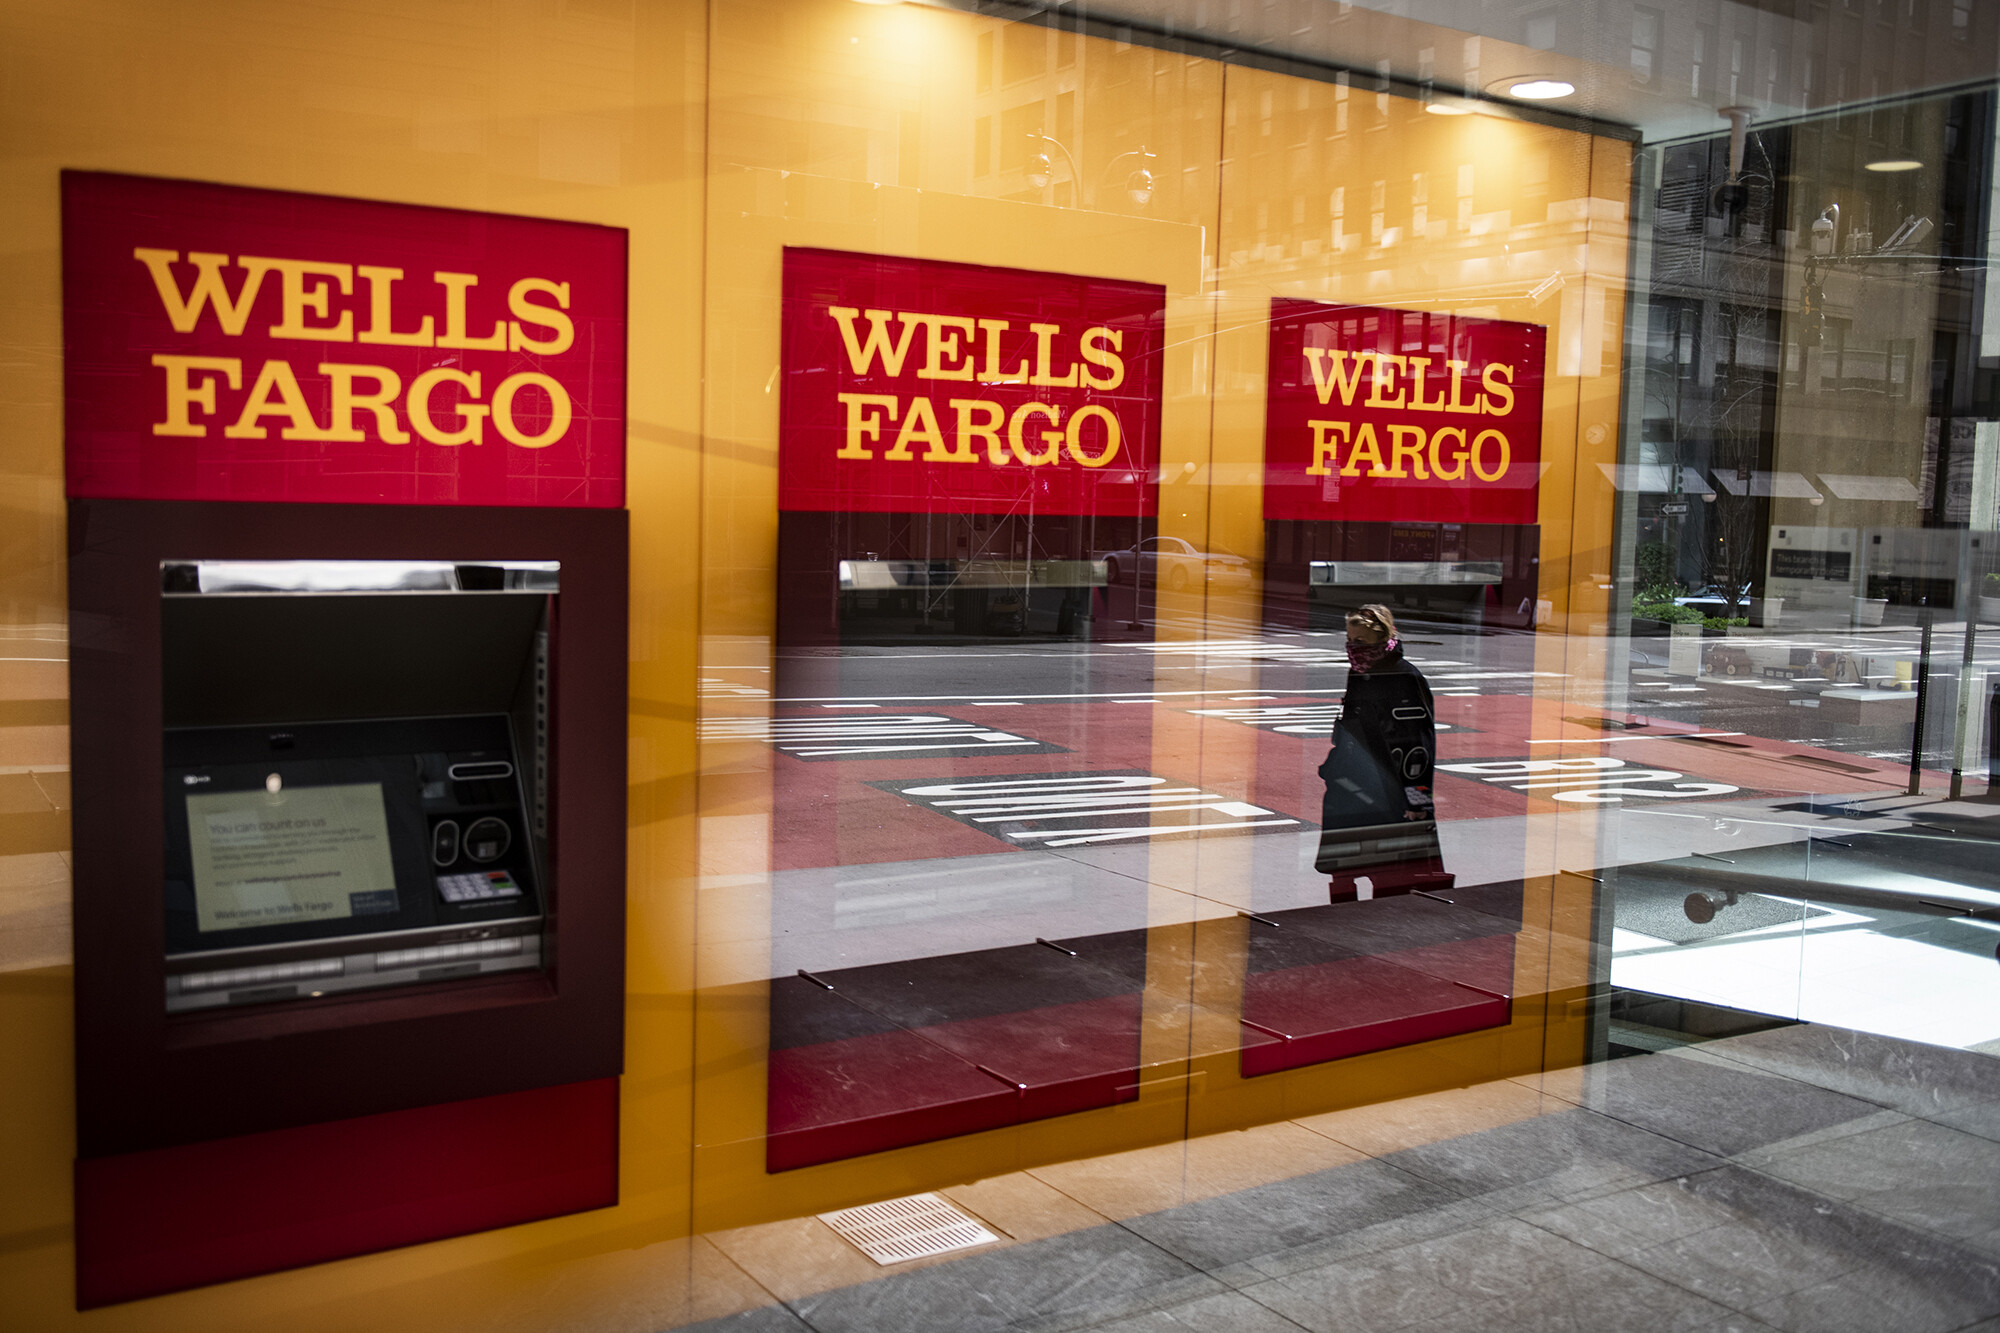 <i>Mark Kauzlarich/Bloomberg/Getty Images</i><br/>Wells Fargo has struggled to get its house in order after a series of scandals erupted five years ago.